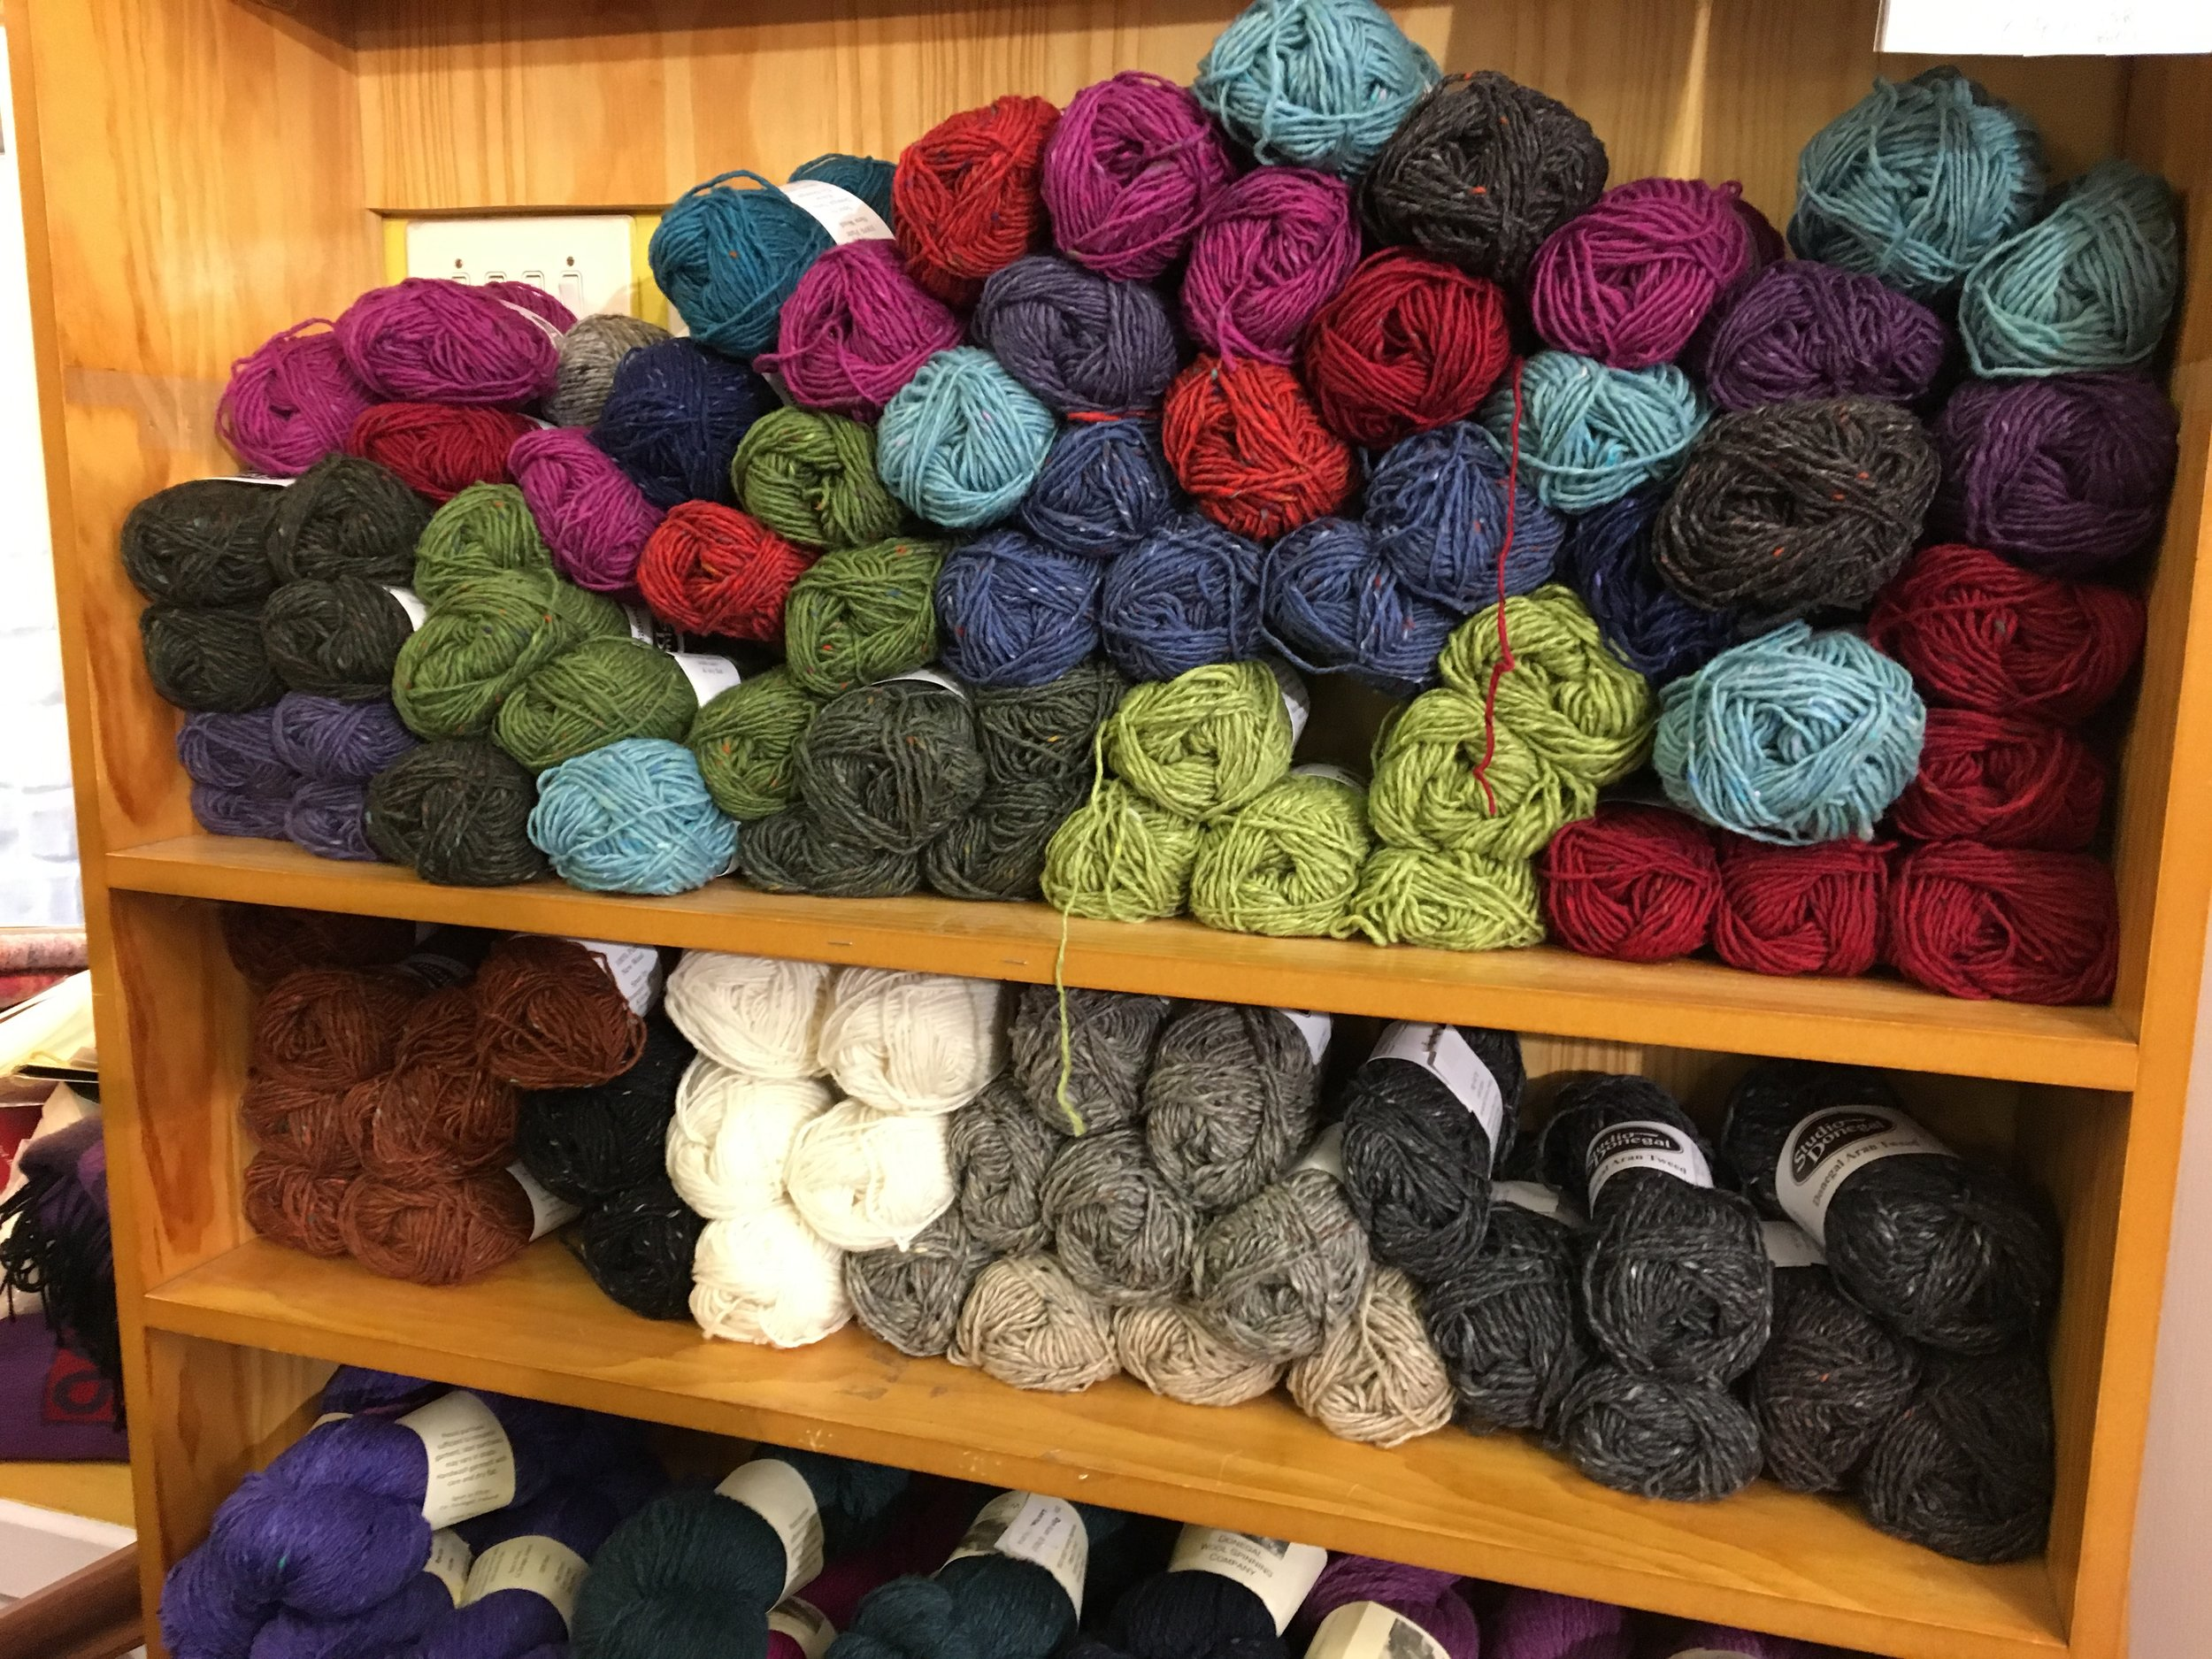 Irish yarn available at O'Maille's.